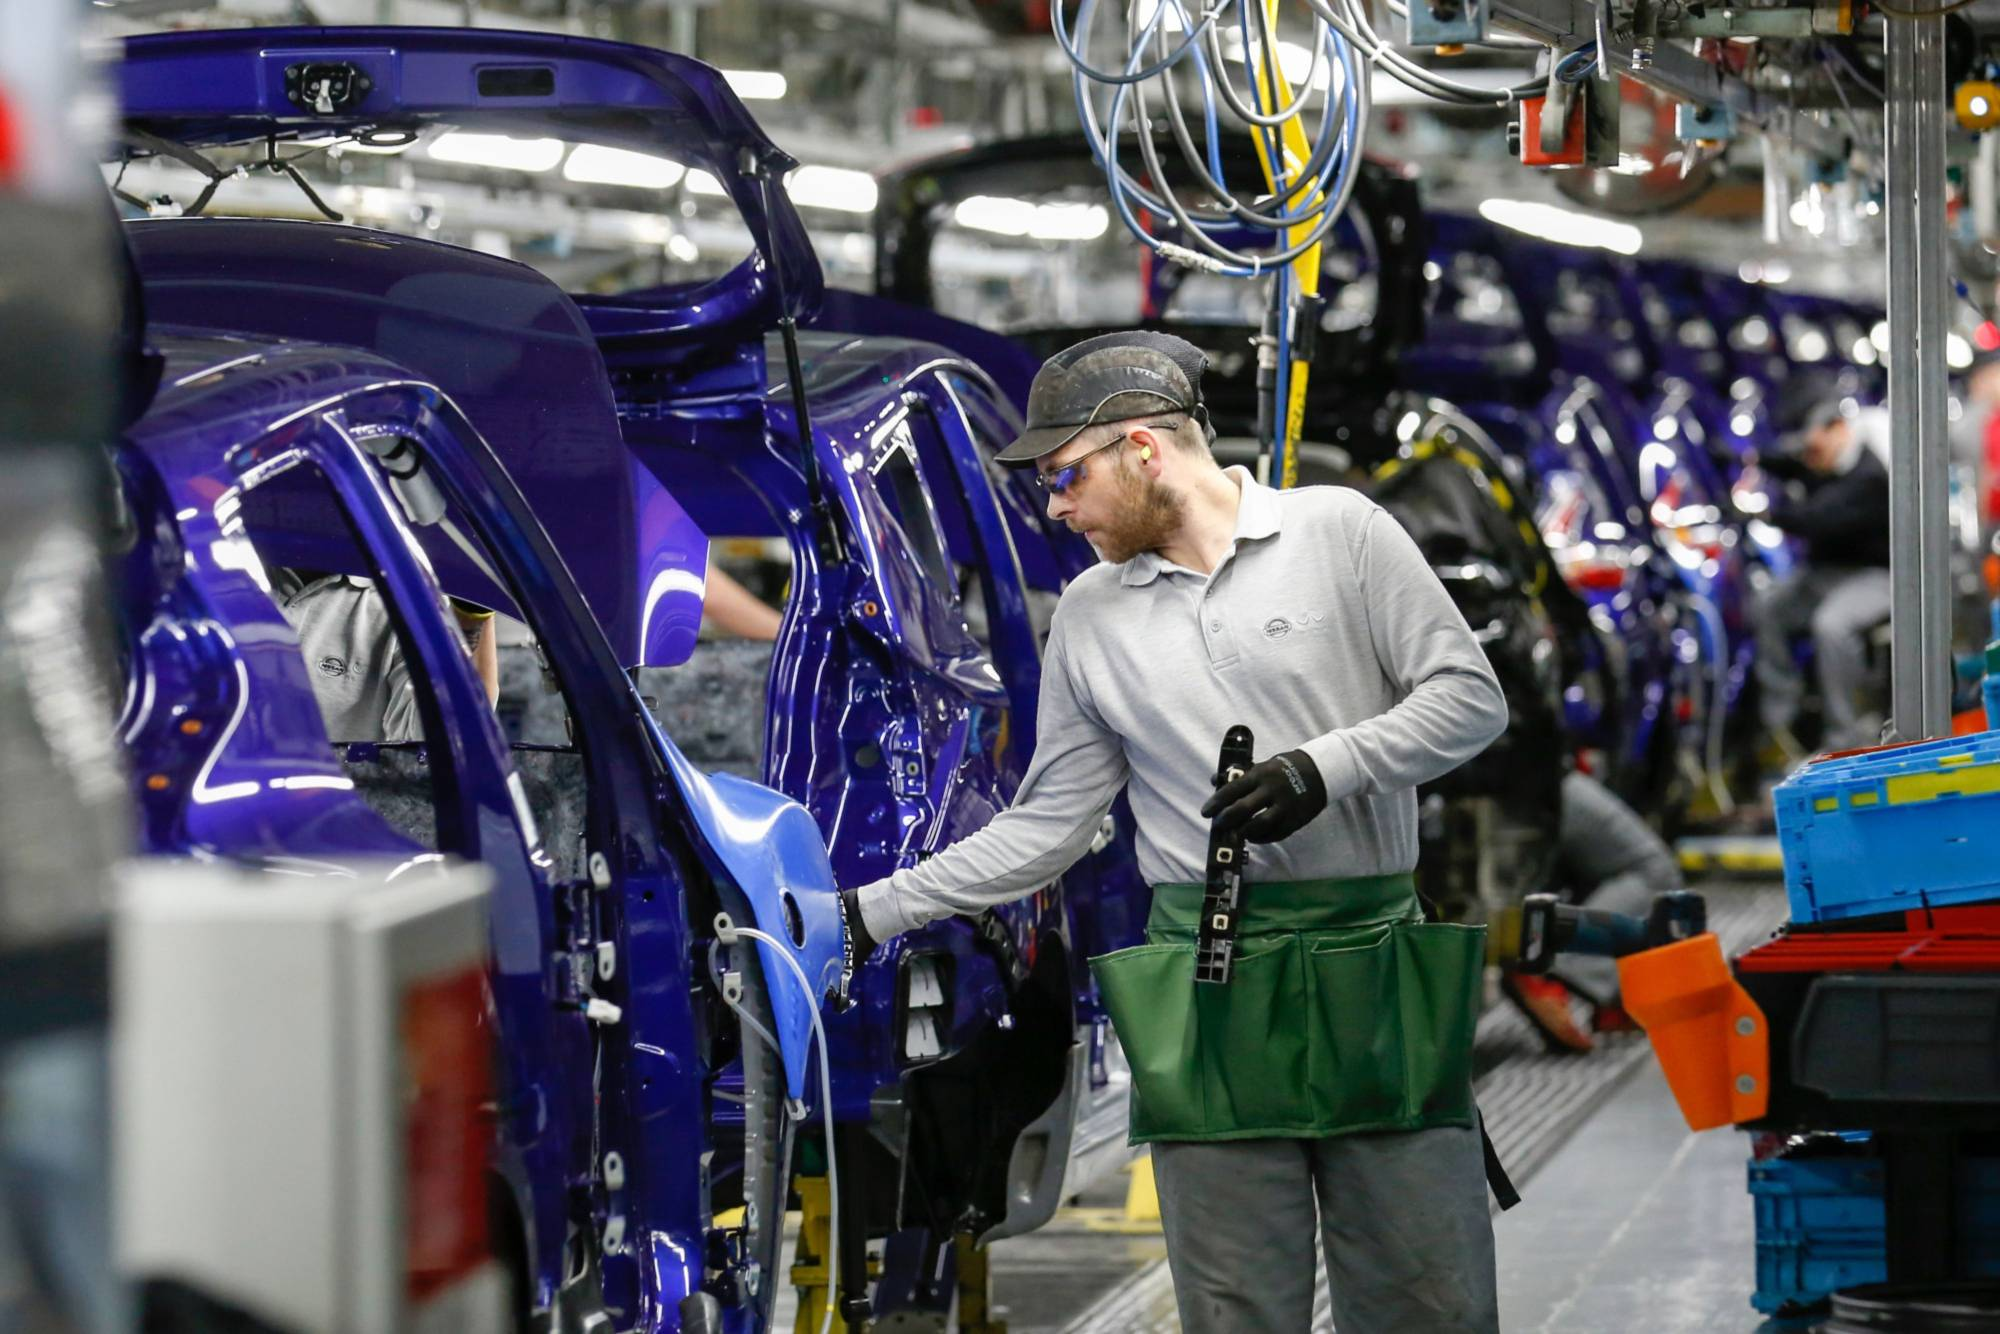 The production line at the Nissan Motor Co. plant in Sunderland, England. The company recently decided against making an electric model at the factory in northeast England and almost two years ago scrapped plans to build another sport utility vehicle at the same site. | BLOOMBERG